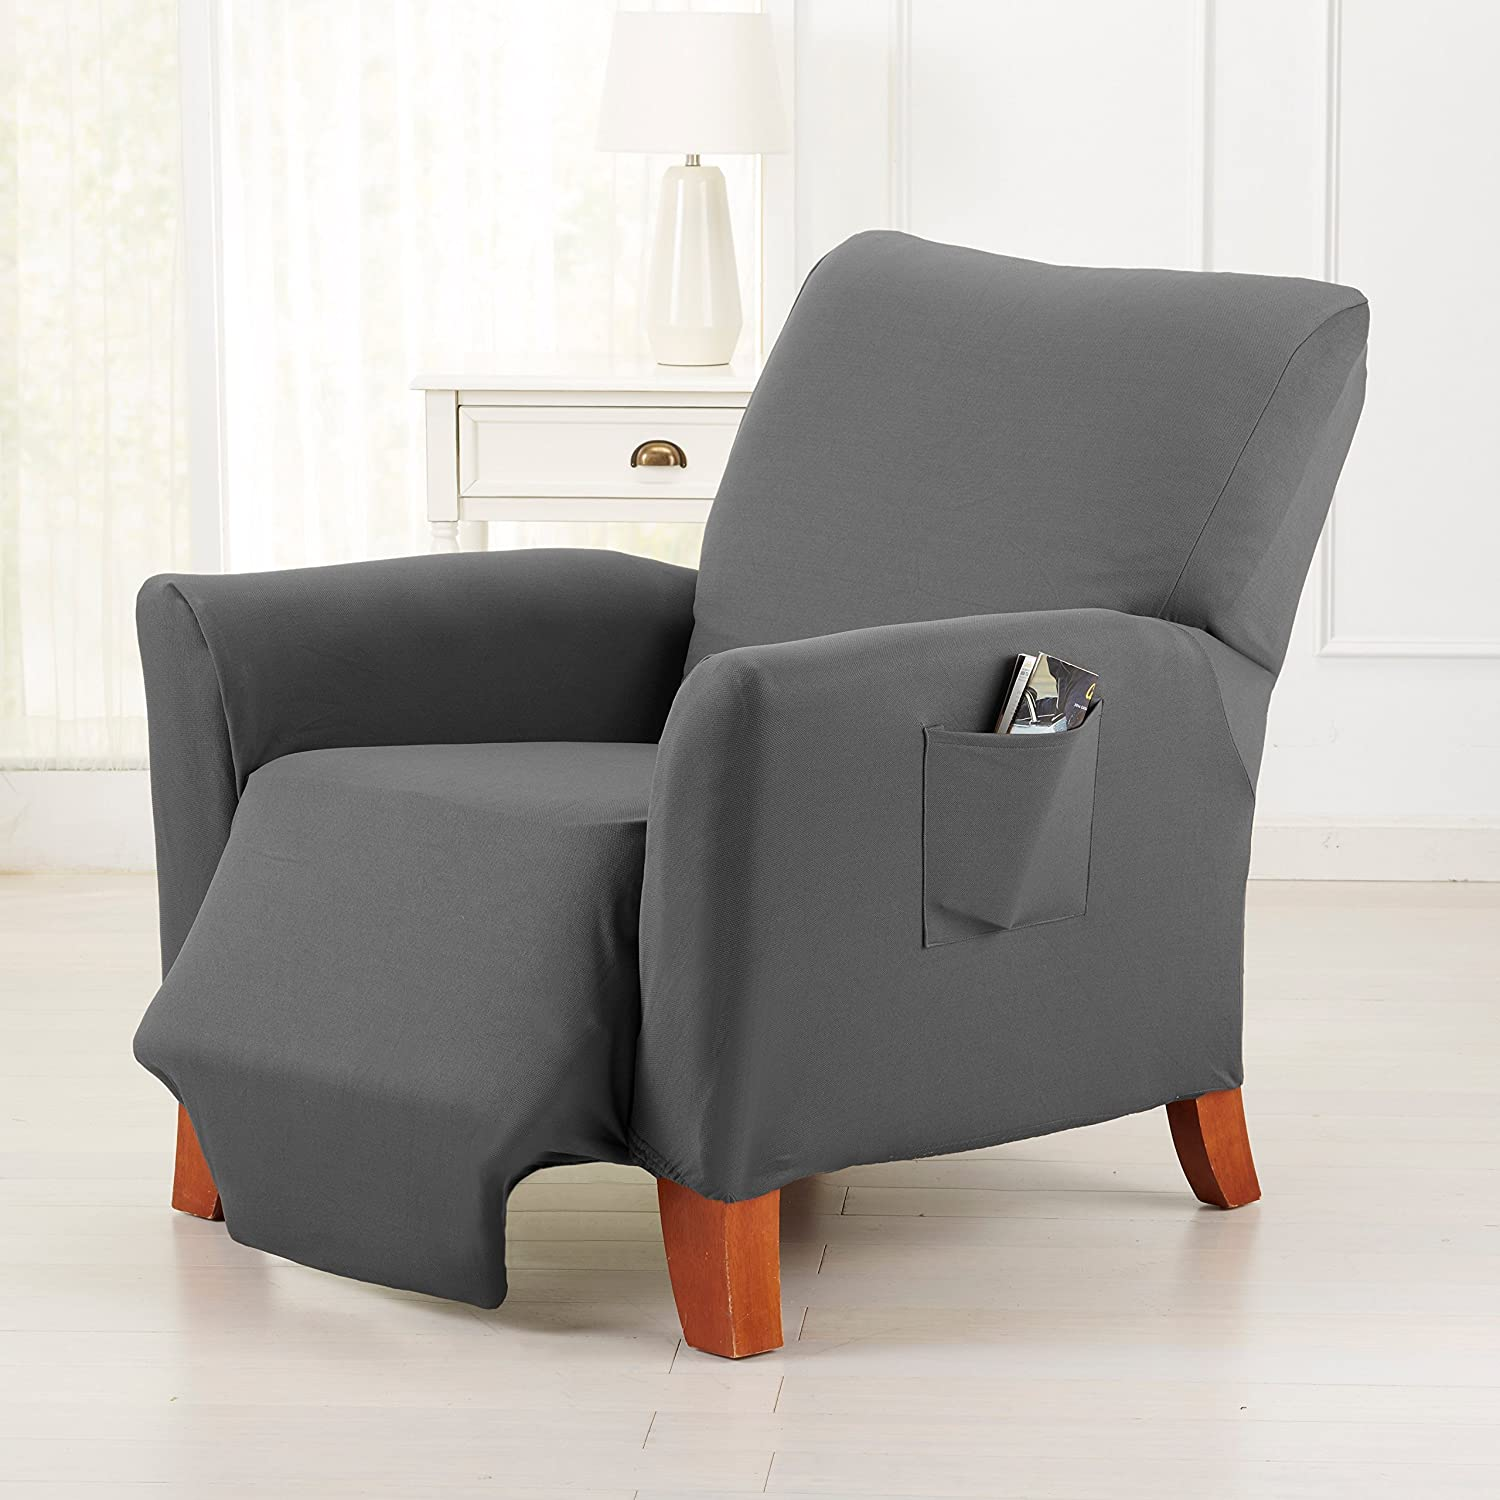 Groovy Dawson Collection Basic Strapless Slipcover Form Fit Slip Resistant Stylish Furniture Shield Protector Featuring Lightweight Twill Fabric By Dailytribune Chair Design For Home Dailytribuneorg